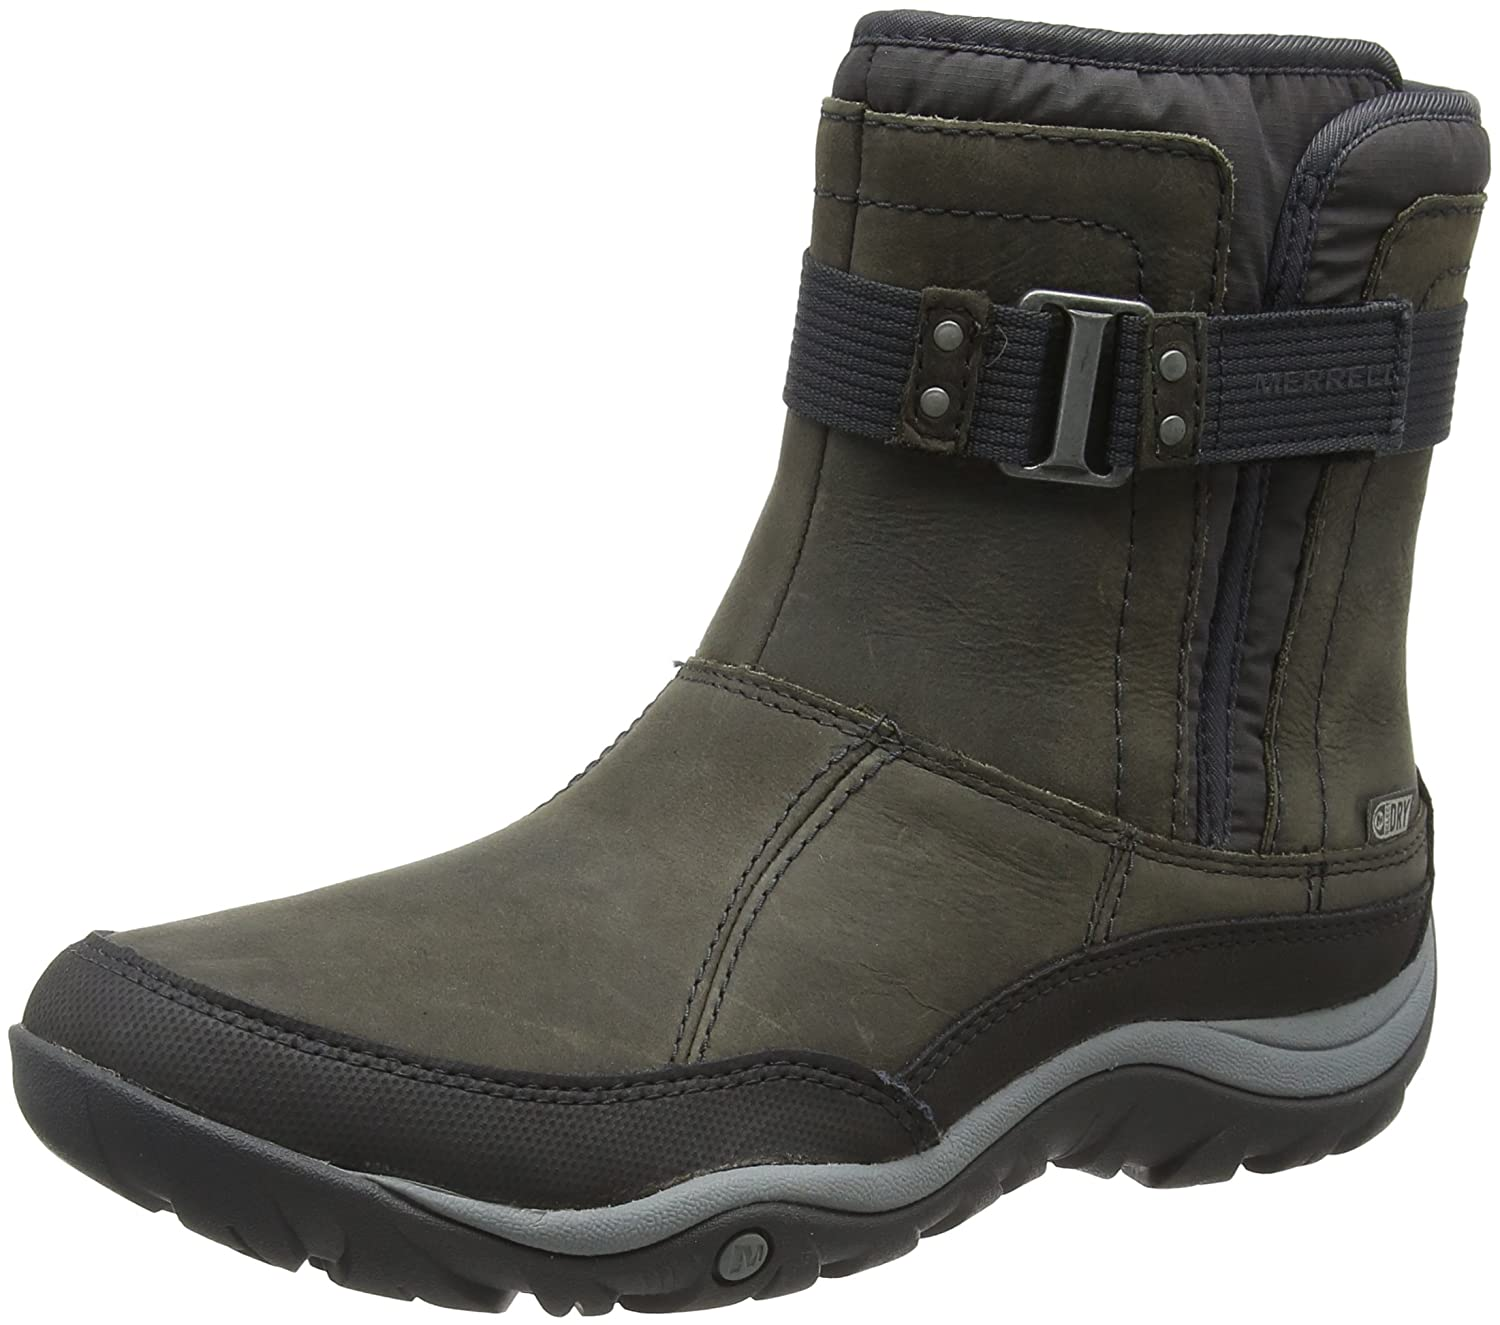 Merrell Women's Murren Strap Waterproof-W Snow Boot B01945I3DW 5 B(M) US|Pewter